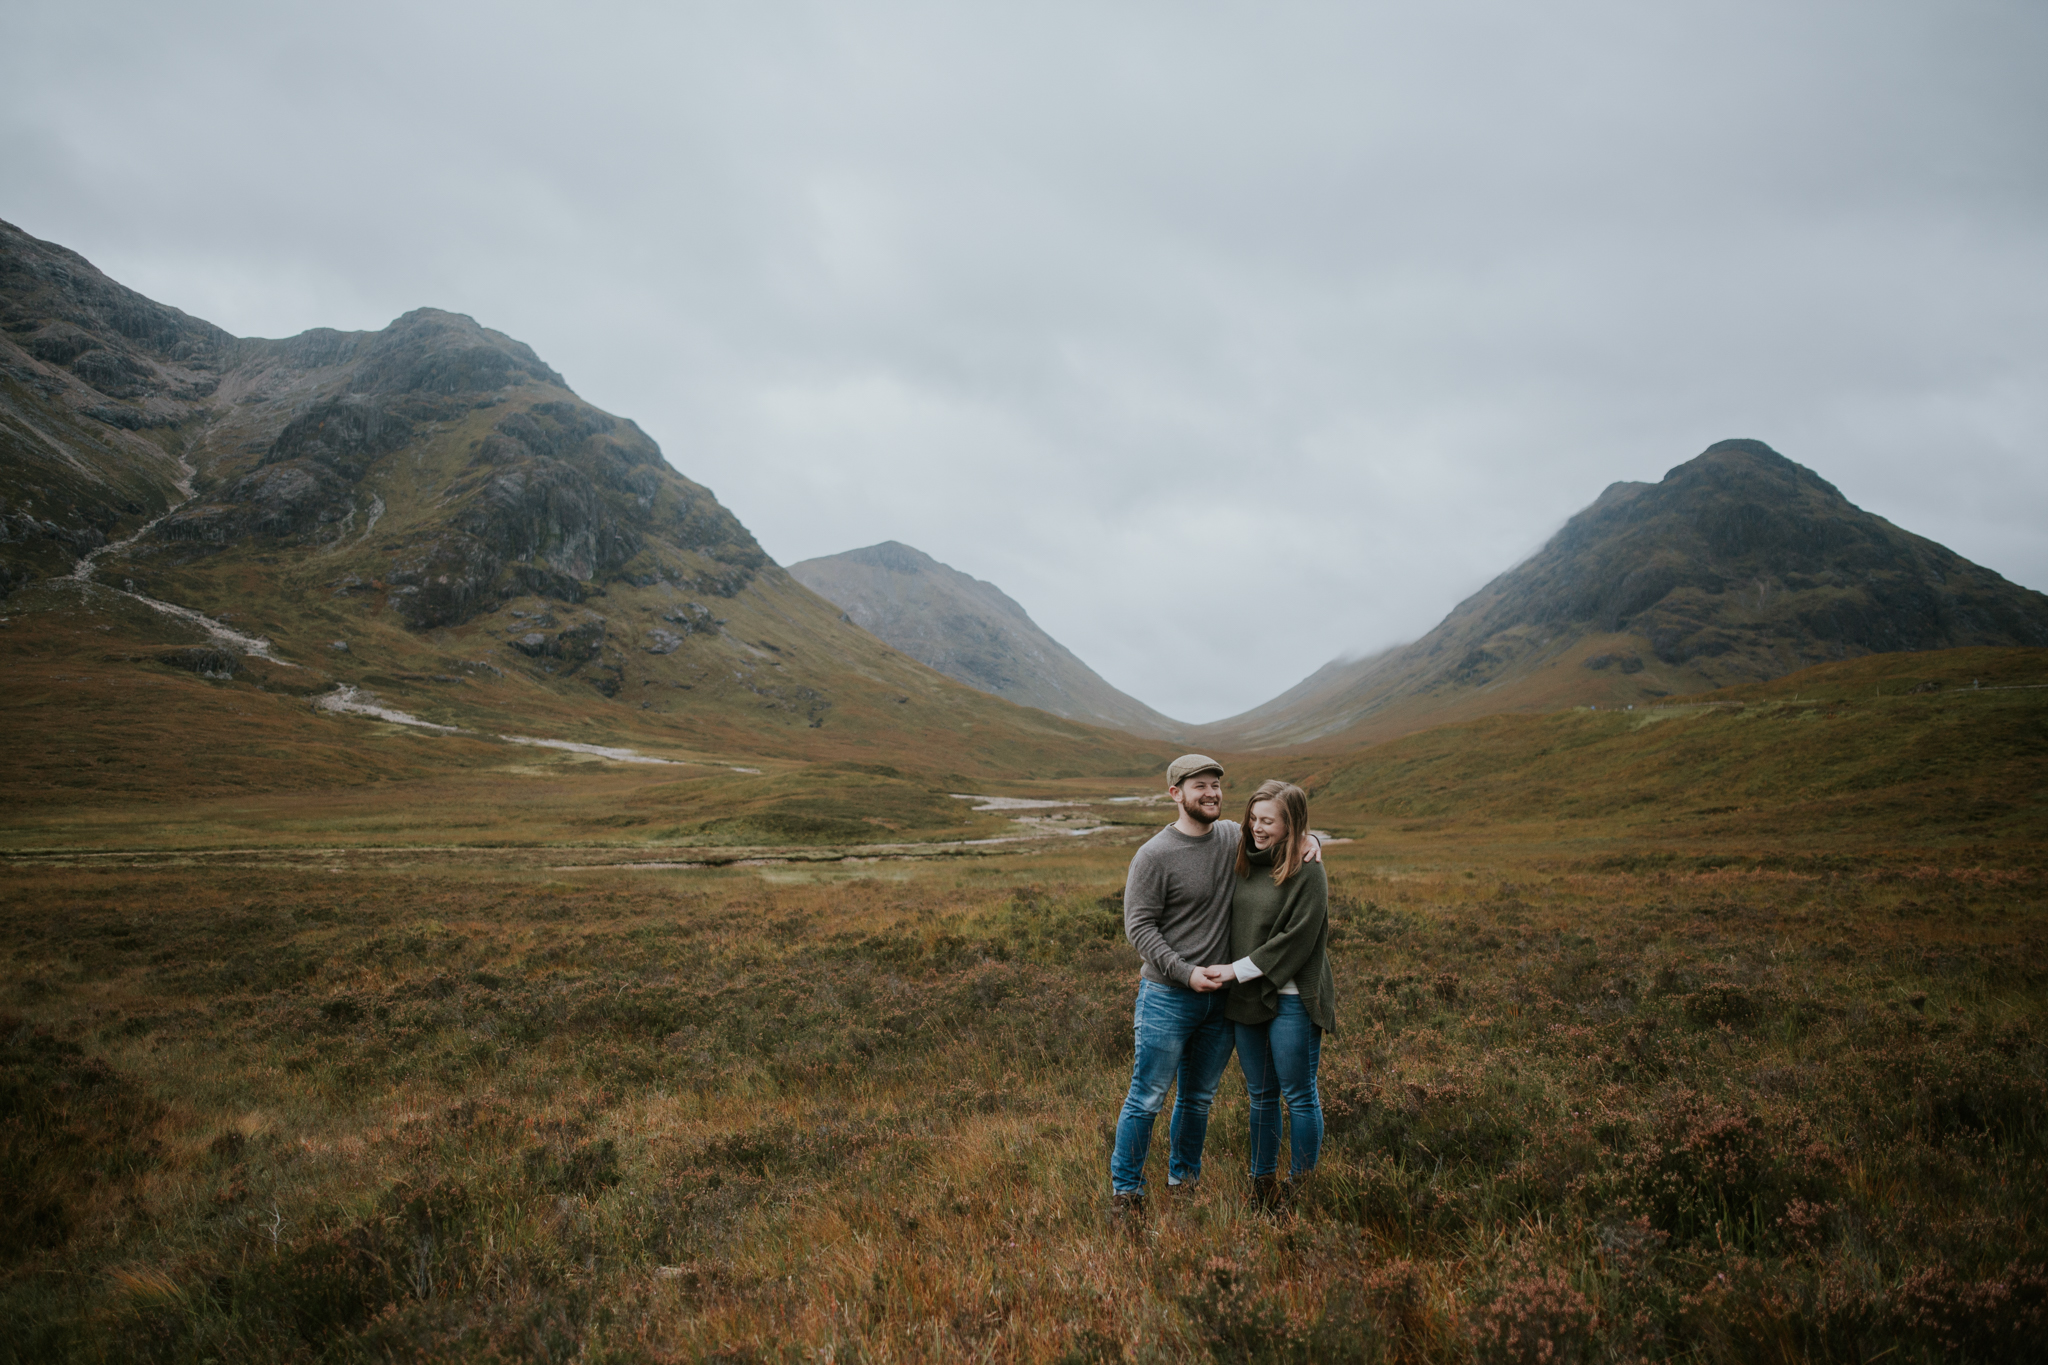 The couple is standing at the breathtaking view of the spectacular Glencoe in the Scottish Highlands